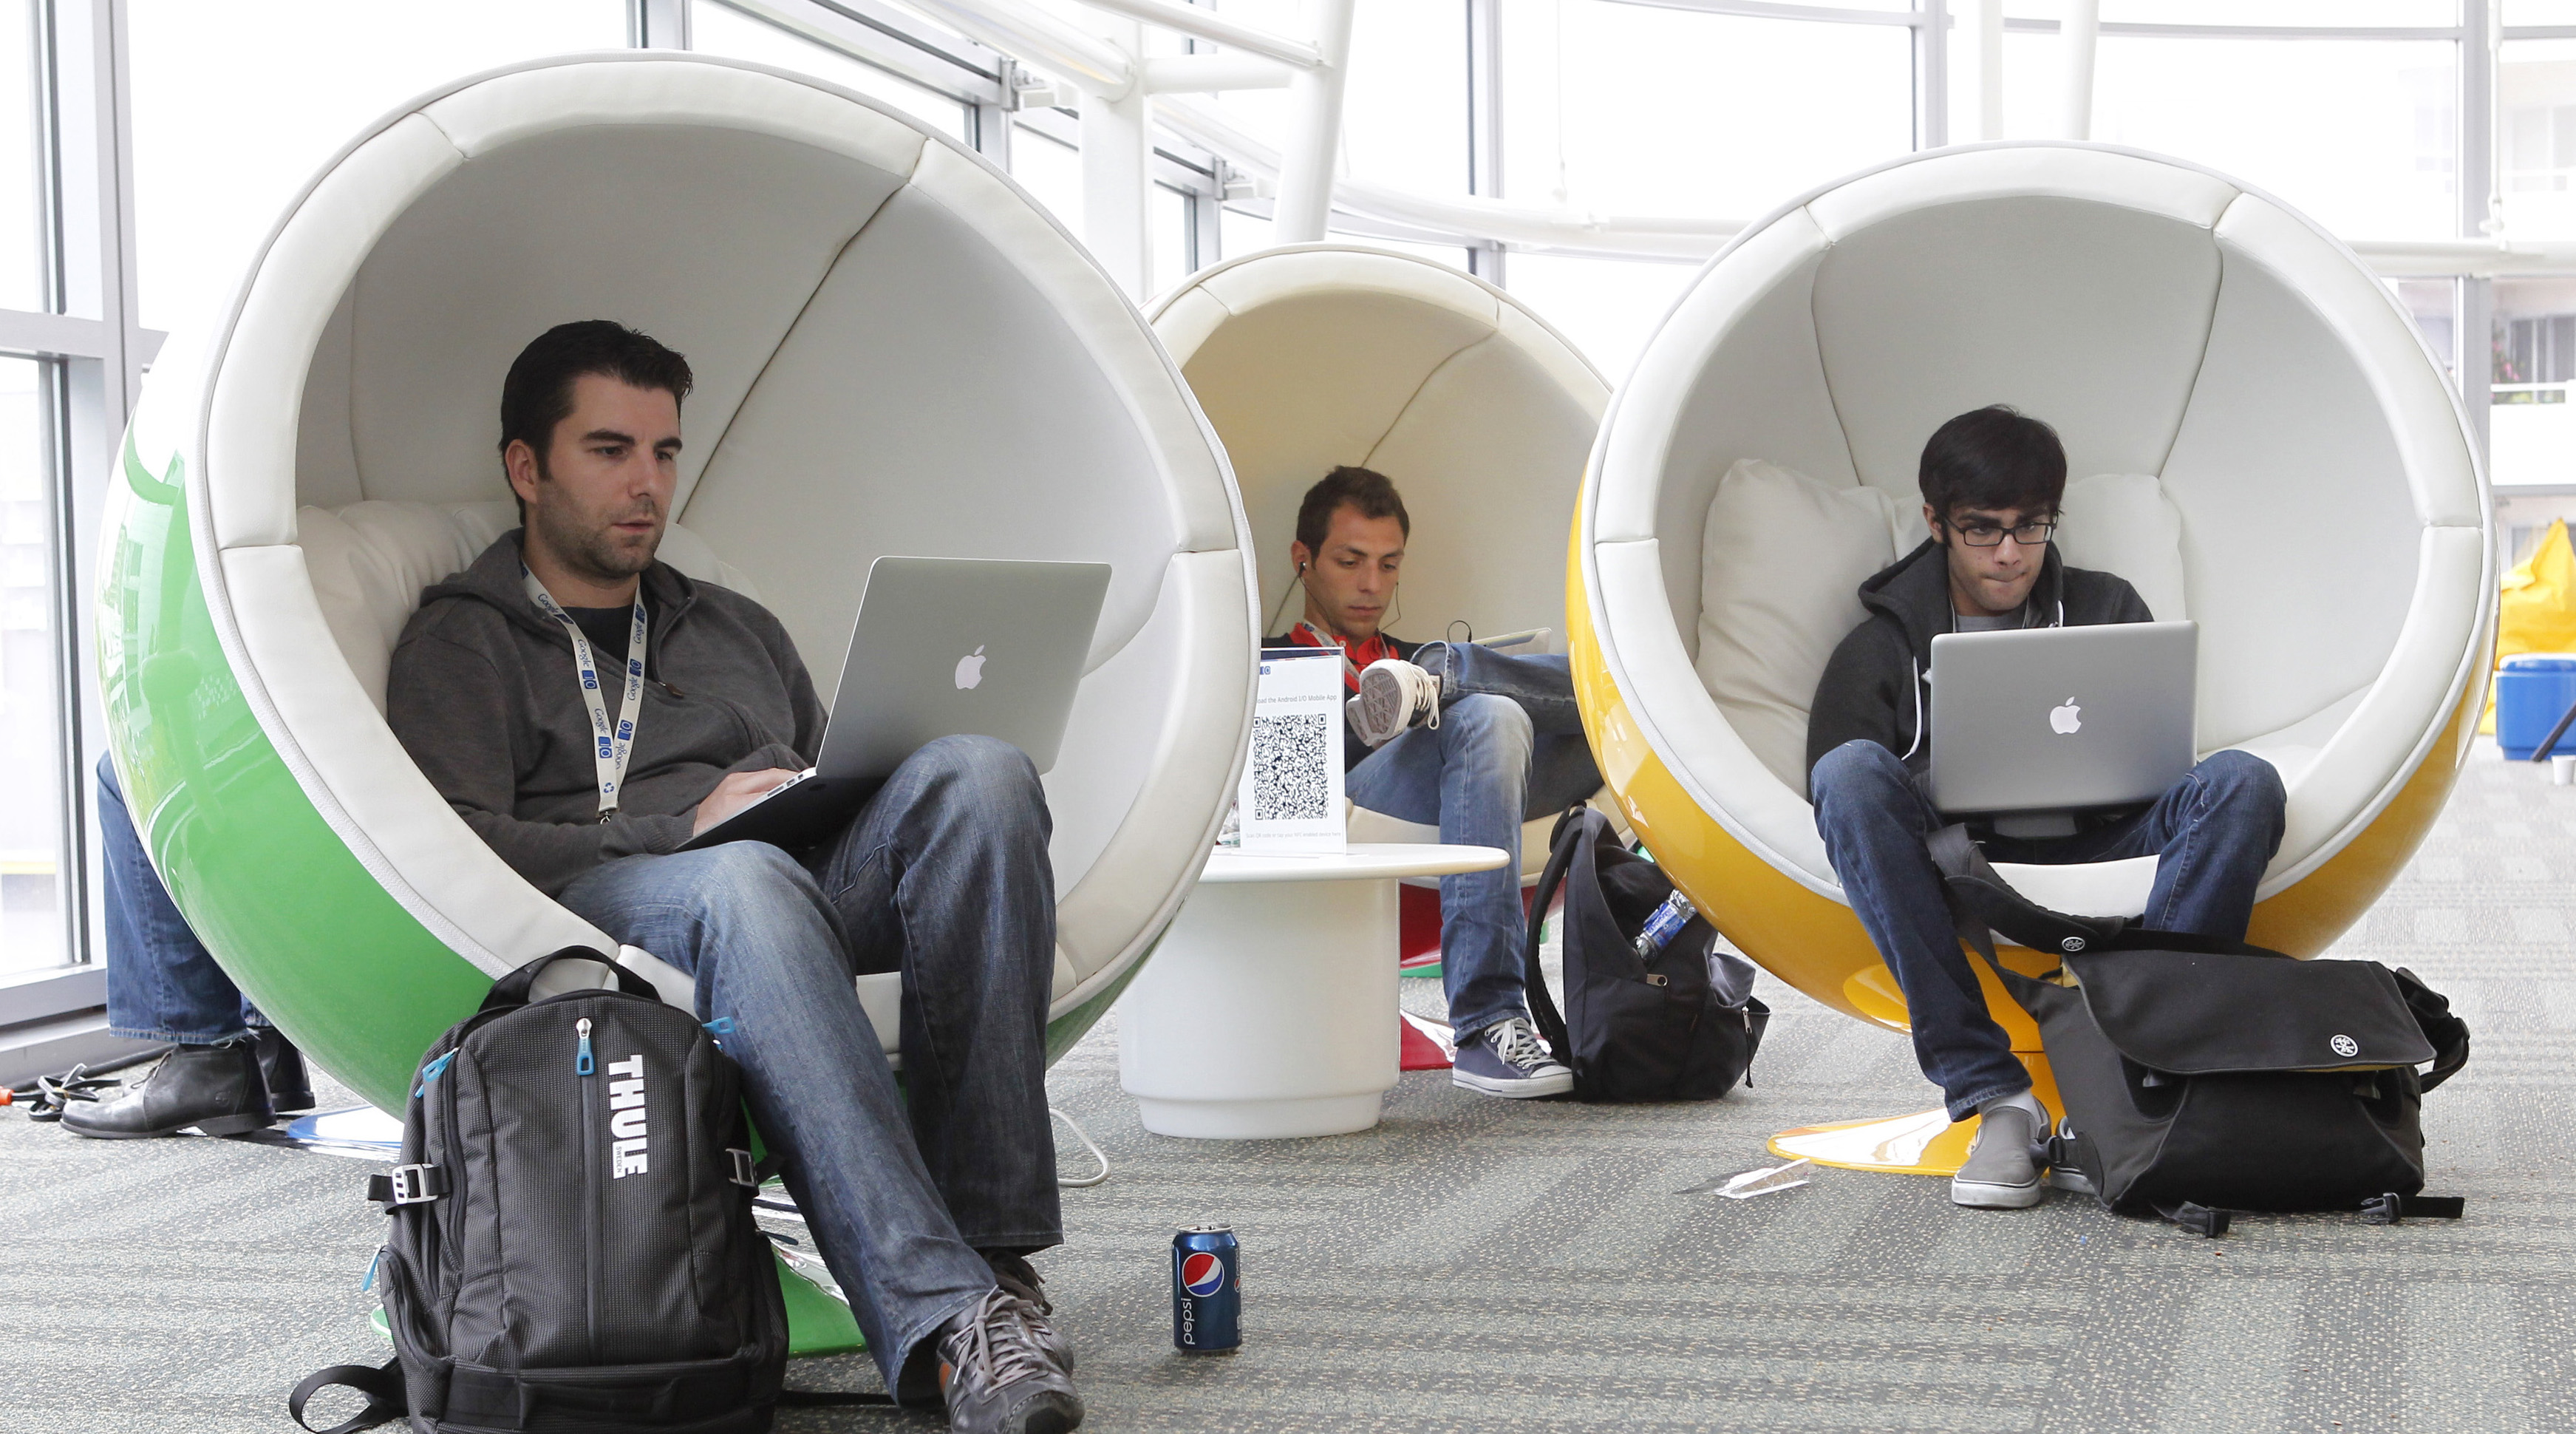 Matthias Klabbenbach (L), of eBay, Massimo Paladin (2nd L), of Cern, and Shahruz Shaukat, of University of California at Davis, take a break between events at the Google I/O Developers Conference in the Moscone Center in San Francisco, California, May 11, 2011.